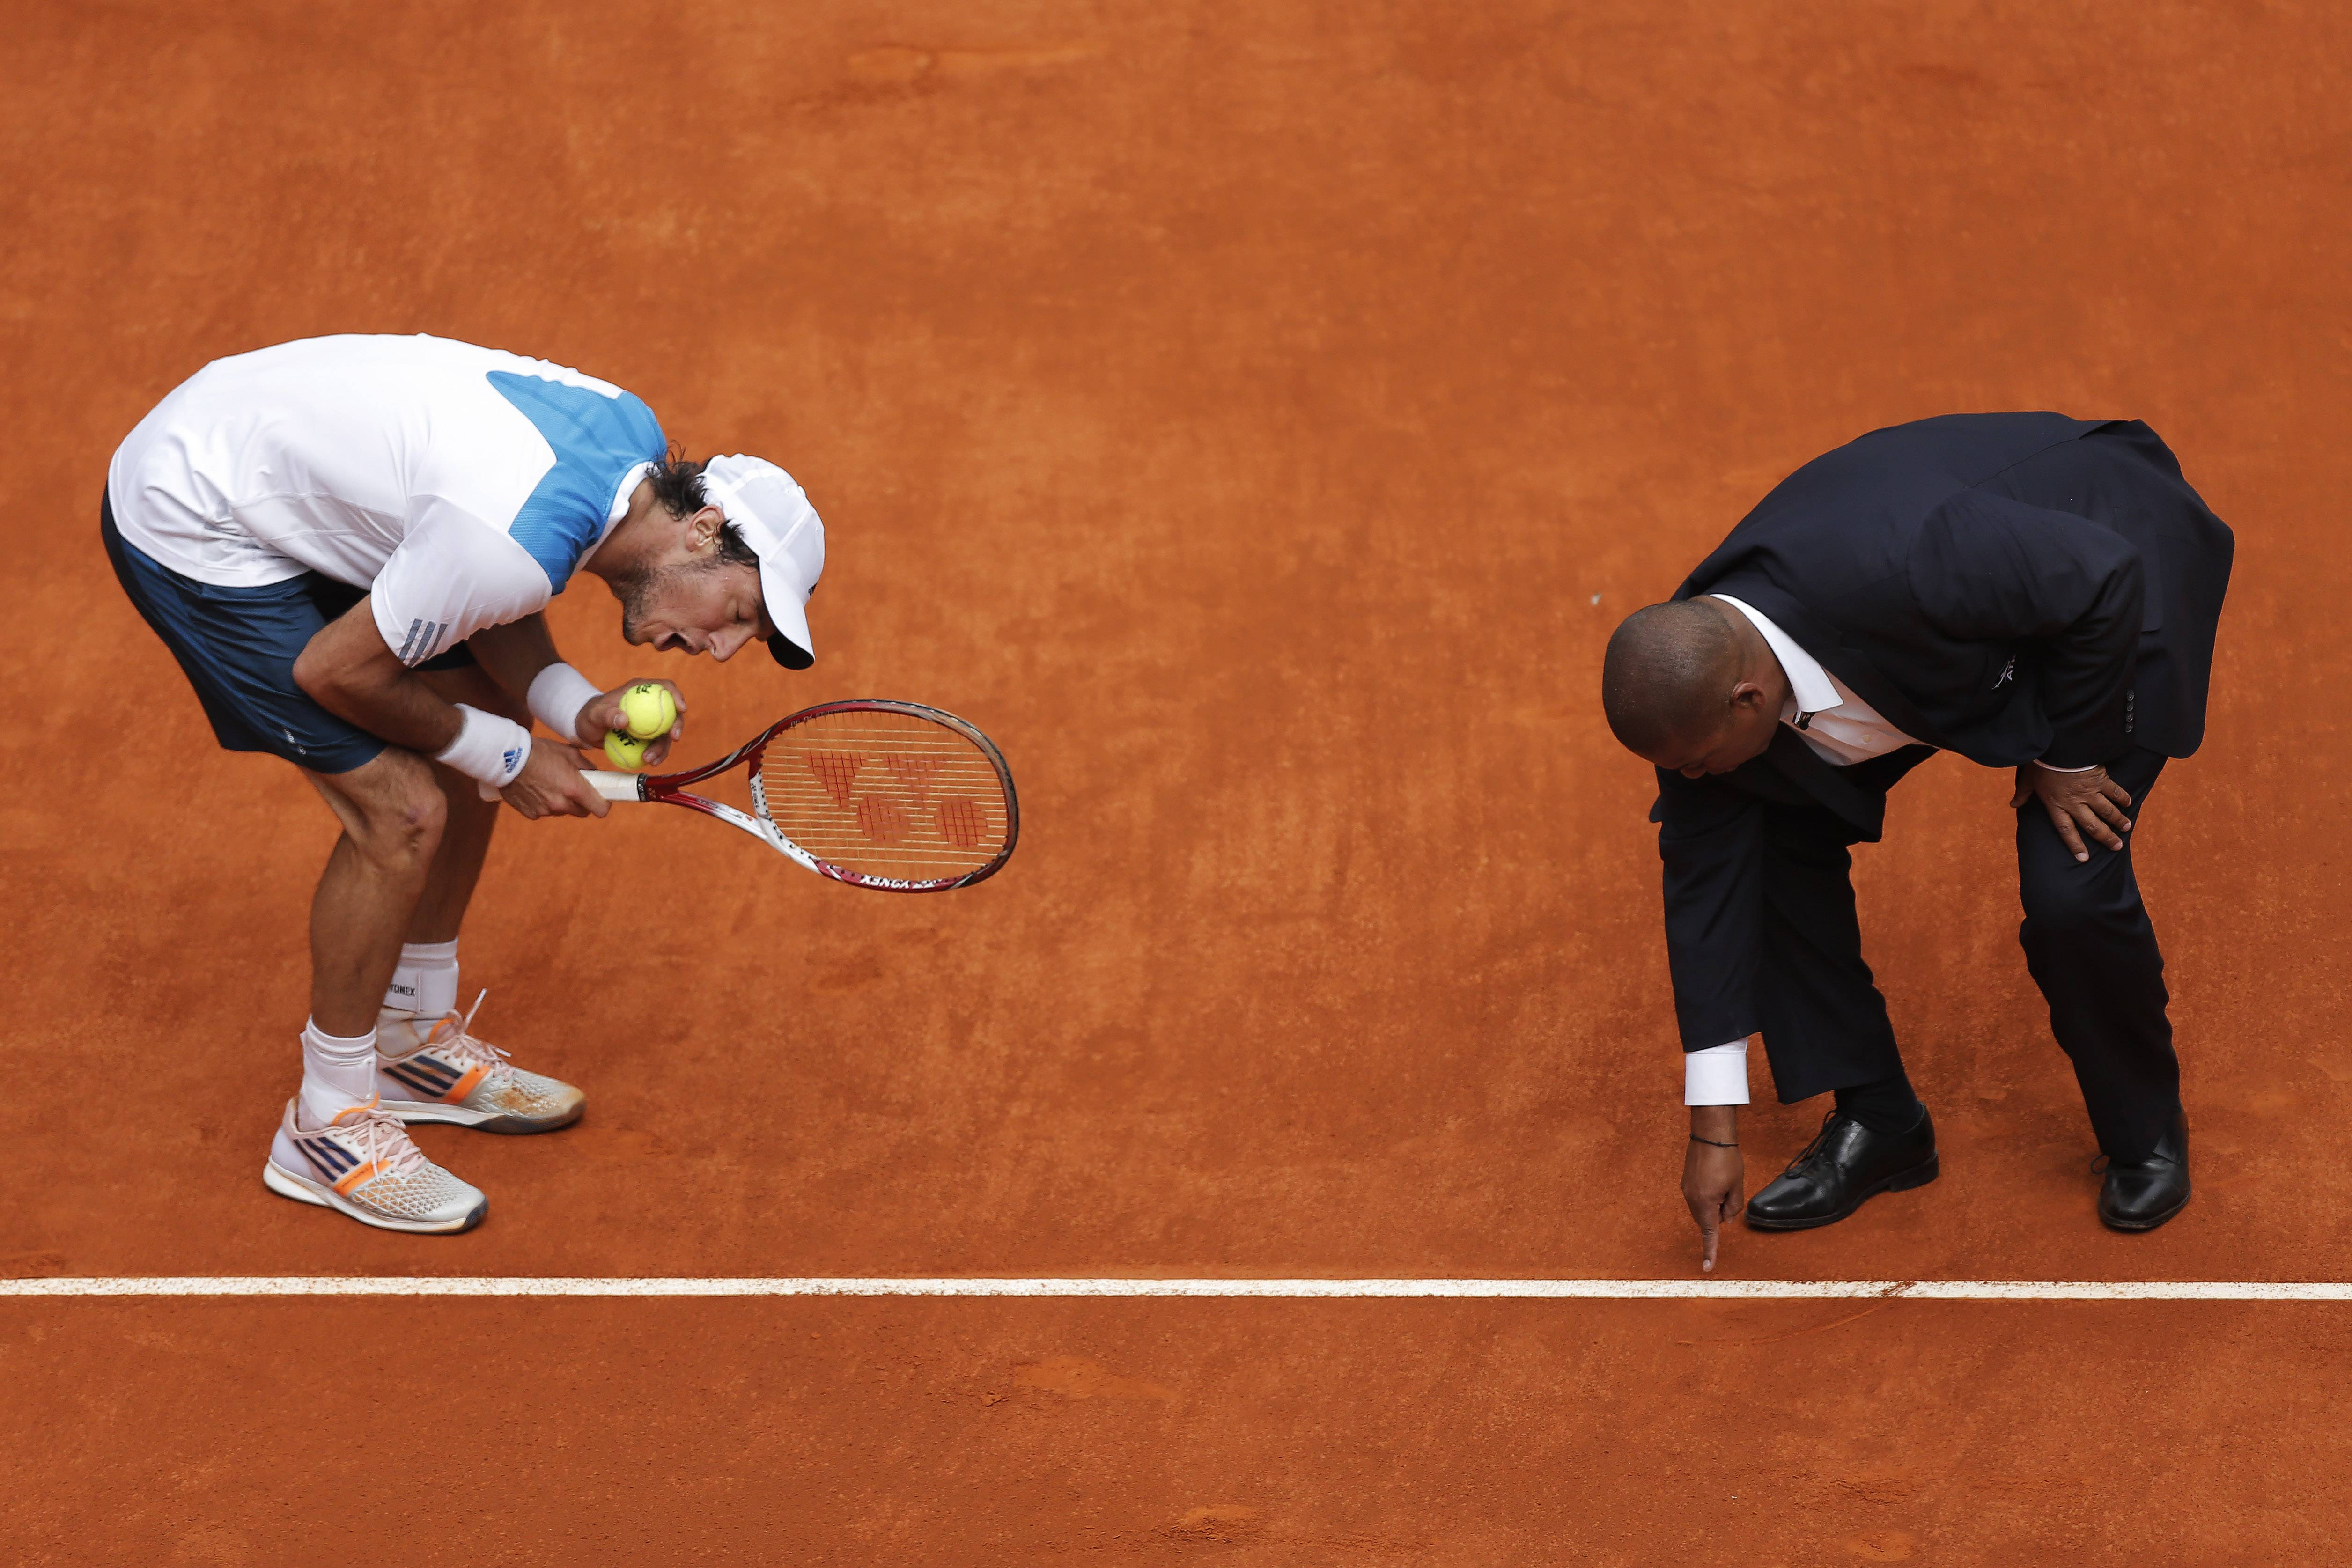 Juan Monaco from Argentina, left, discusses a point with umpire Carlos Bernardes during a Madrid Open tennis tournament match against Rafael Nadal from Spain in Madrid, Spain, Wednesday, May 7, 2014. (AP